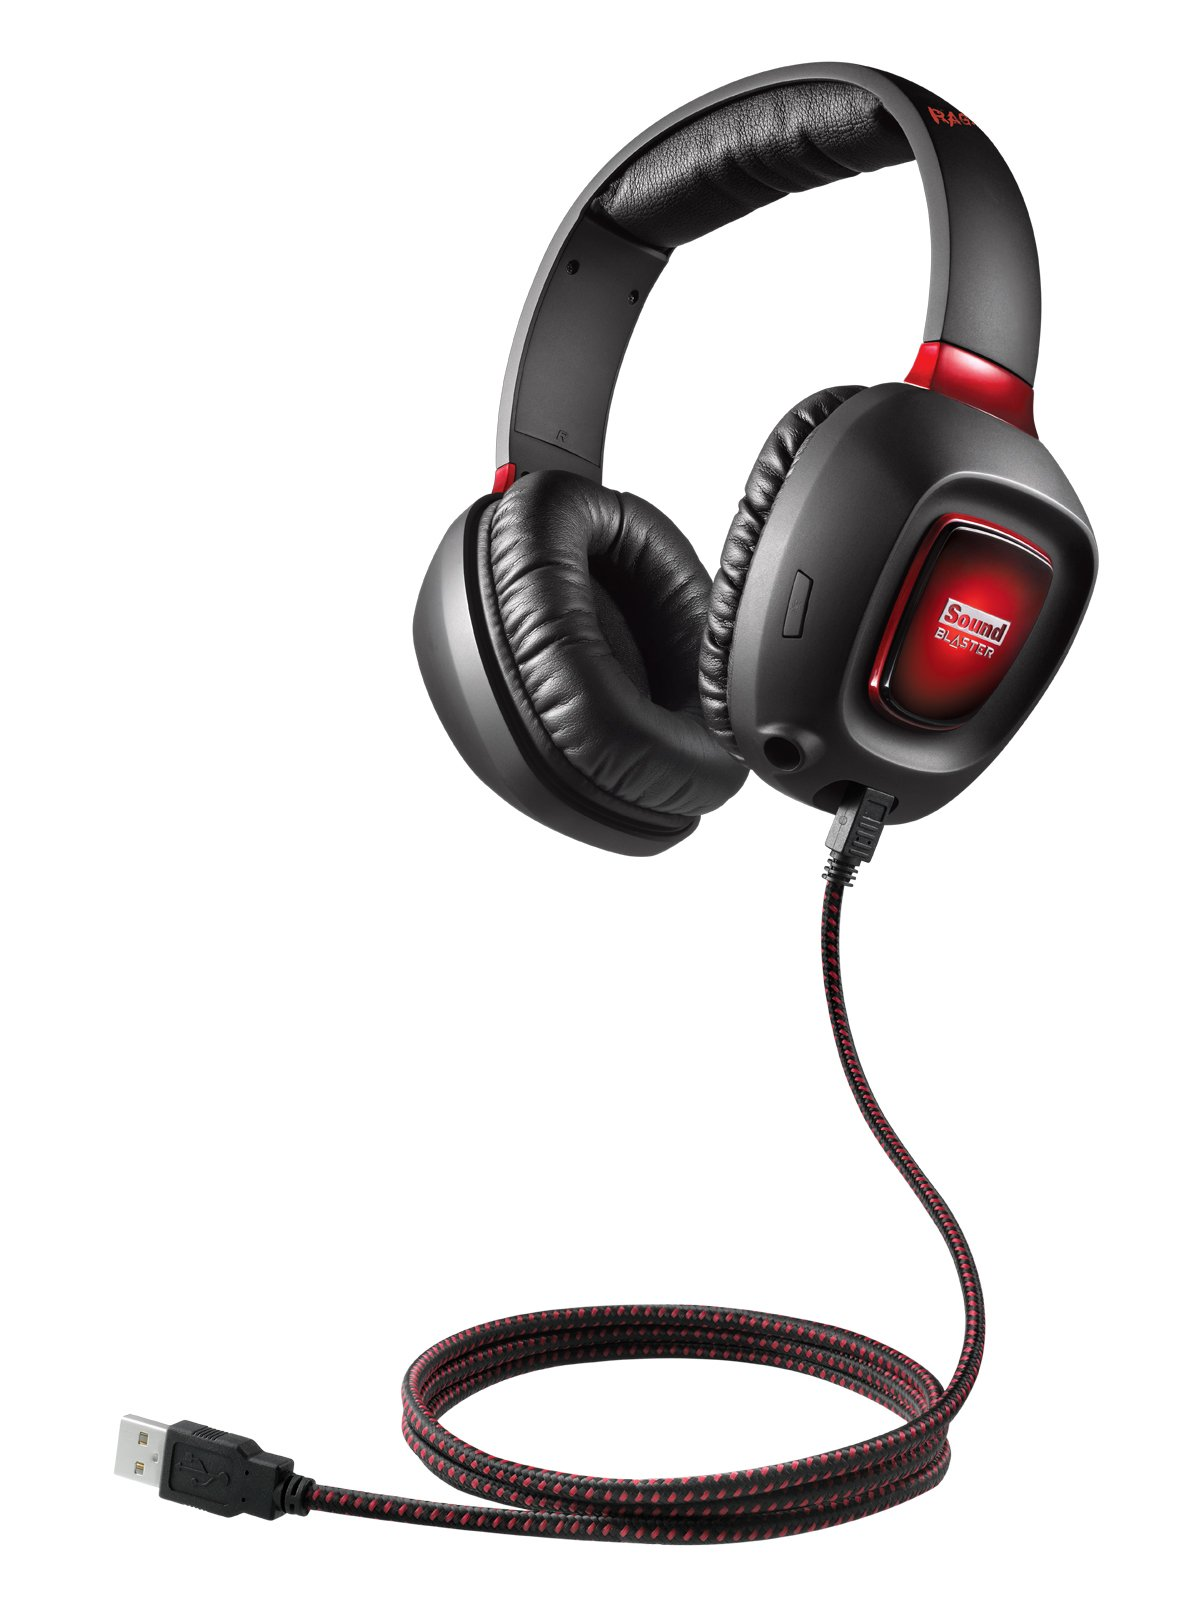 Creative Sound Blaster Tactic3D Rage USB Gaming Headset by Creative (Image #4)